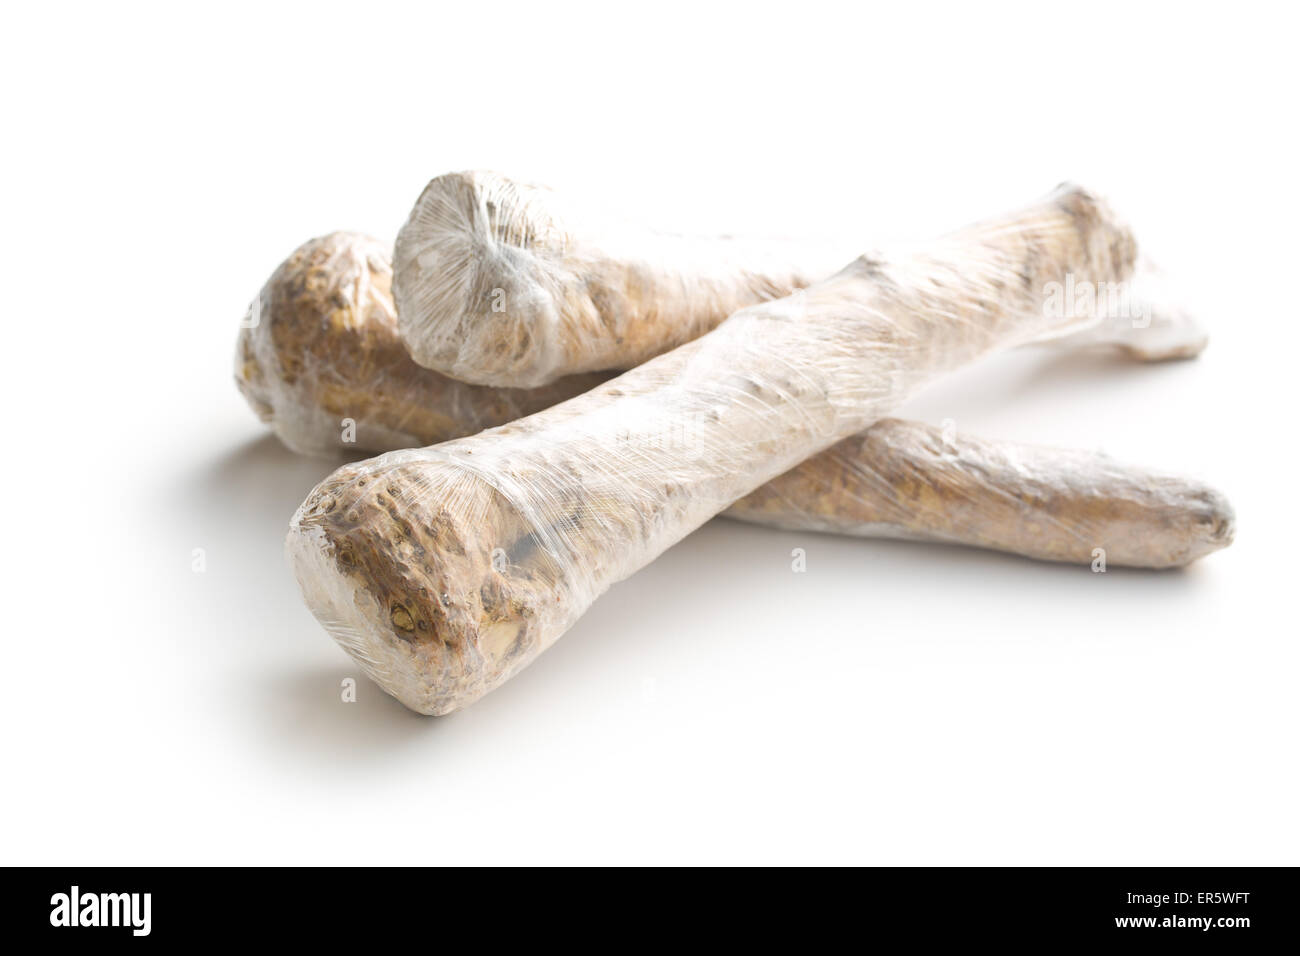 horseradish wrapped in foil on white background - Stock Image